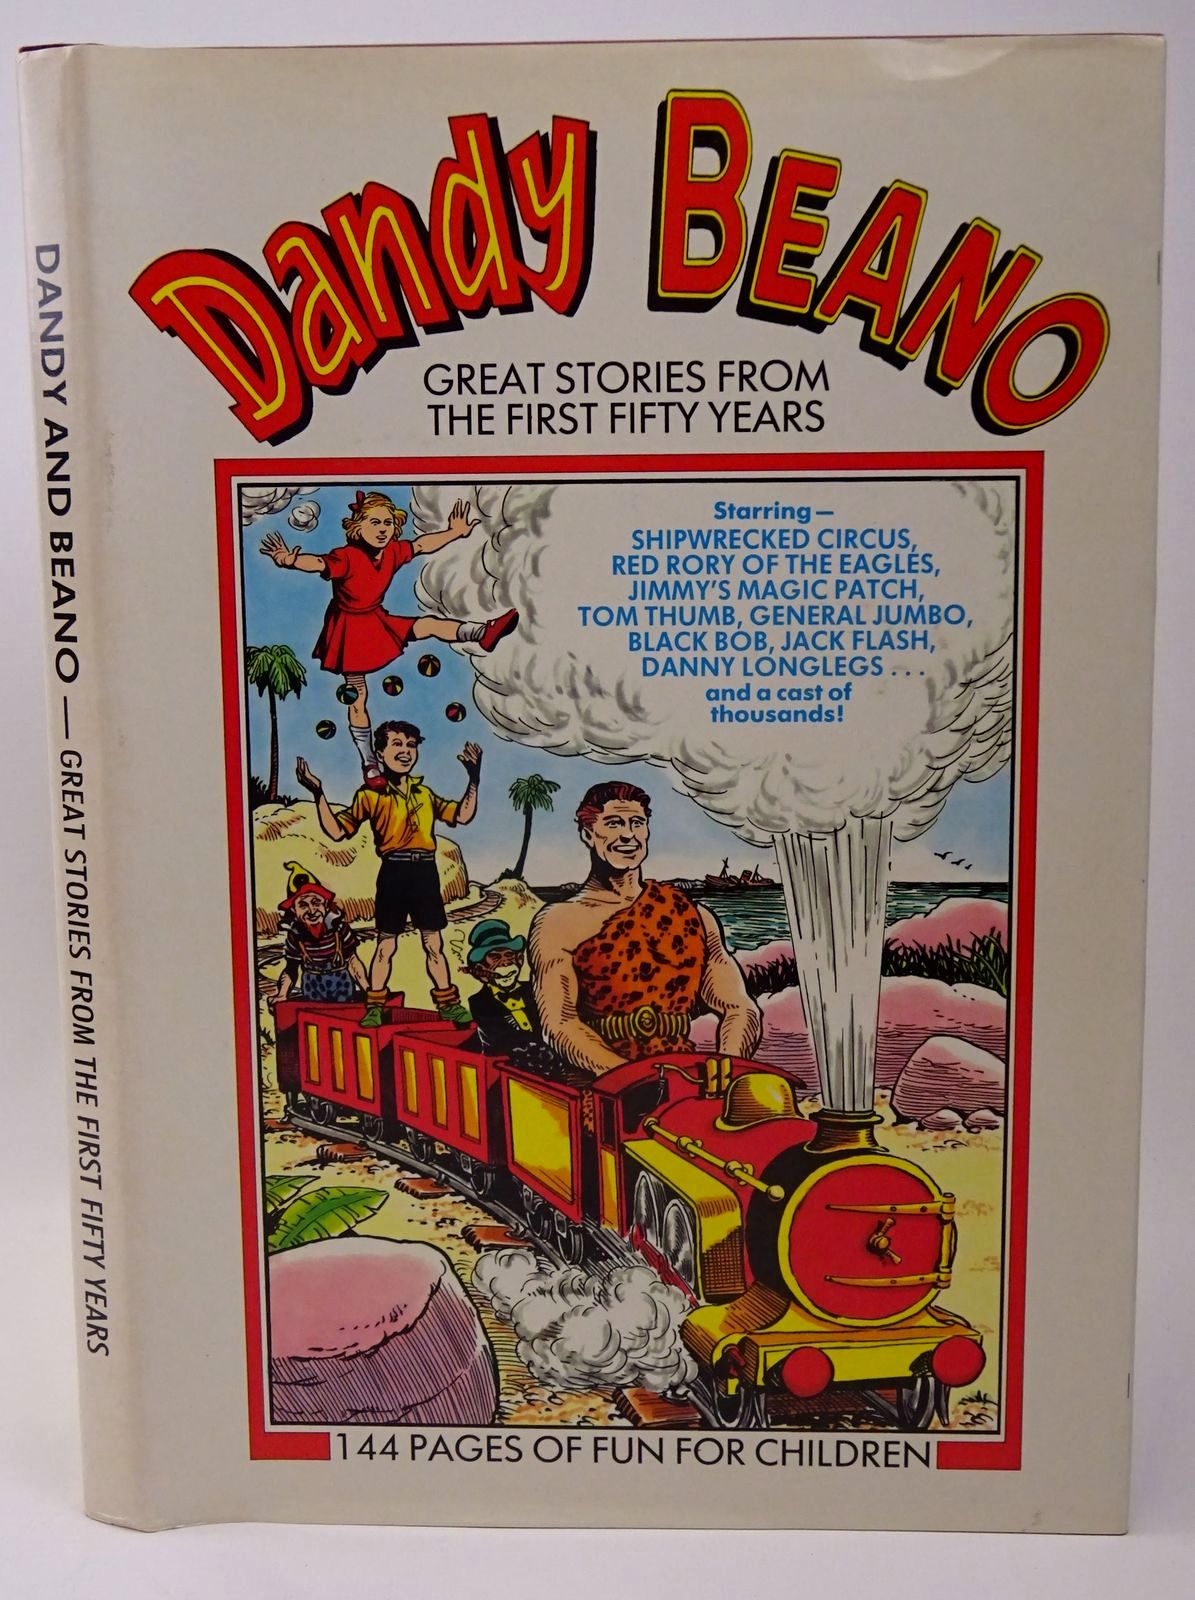 Photo of DANDY AND BEANO - GREAT STORIES FROM THE FIRST FIFTY YEARS published by D.C. Thomson & Co Ltd. (STOCK CODE: 1317740)  for sale by Stella & Rose's Books